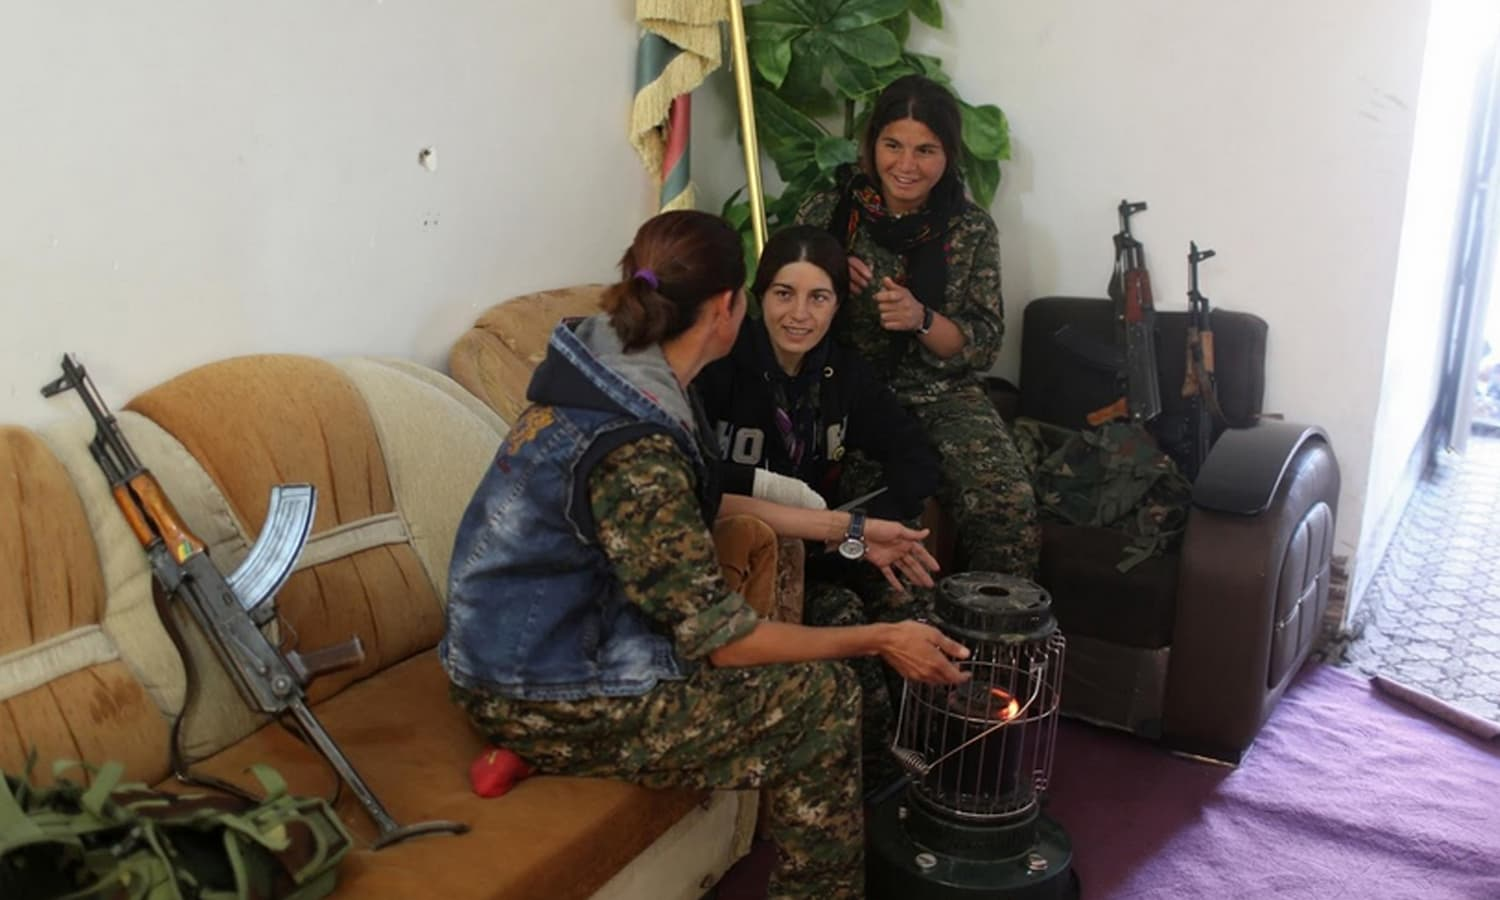 Female fighters talk as they sit around a heater.